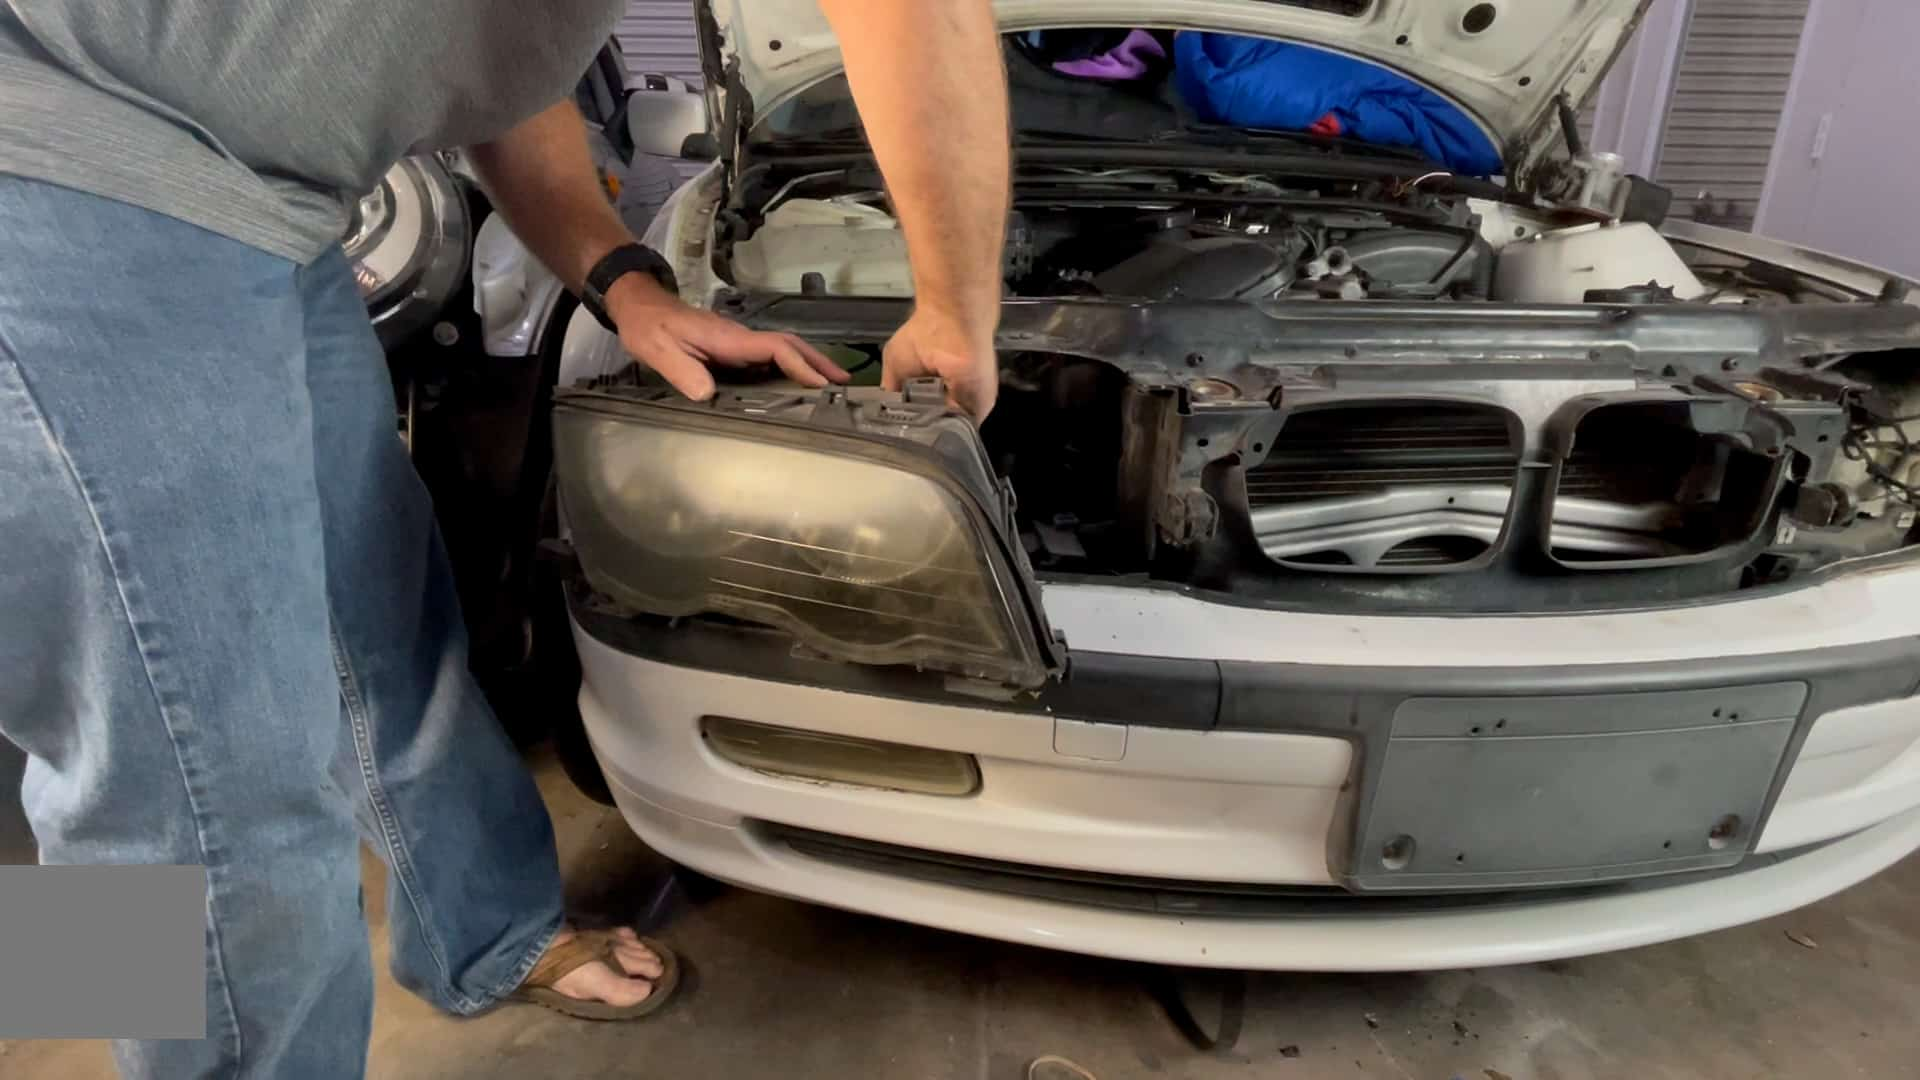 bmw e46 headlight removal - Unplug the bulbs and remove the headlight from the vehicle